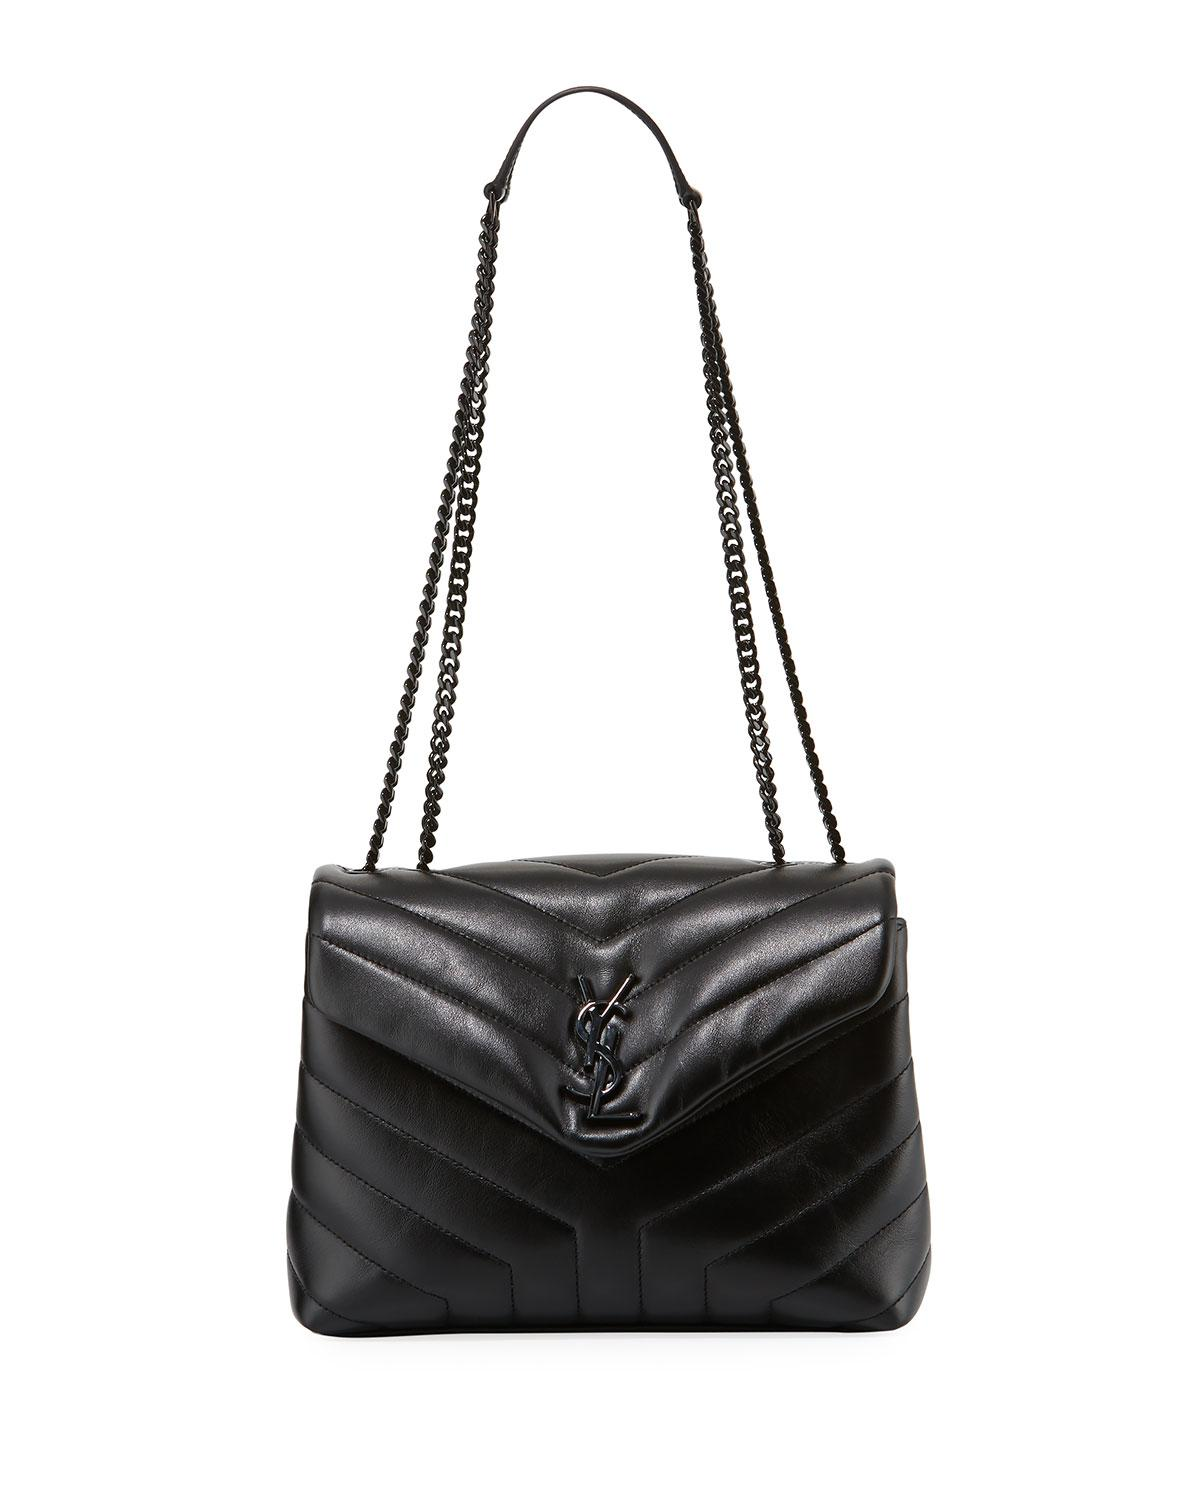 03f7a489d78 Lyst - Saint Laurent Monogram Ysl Loulou Small Chain Shoulder Bag in ...